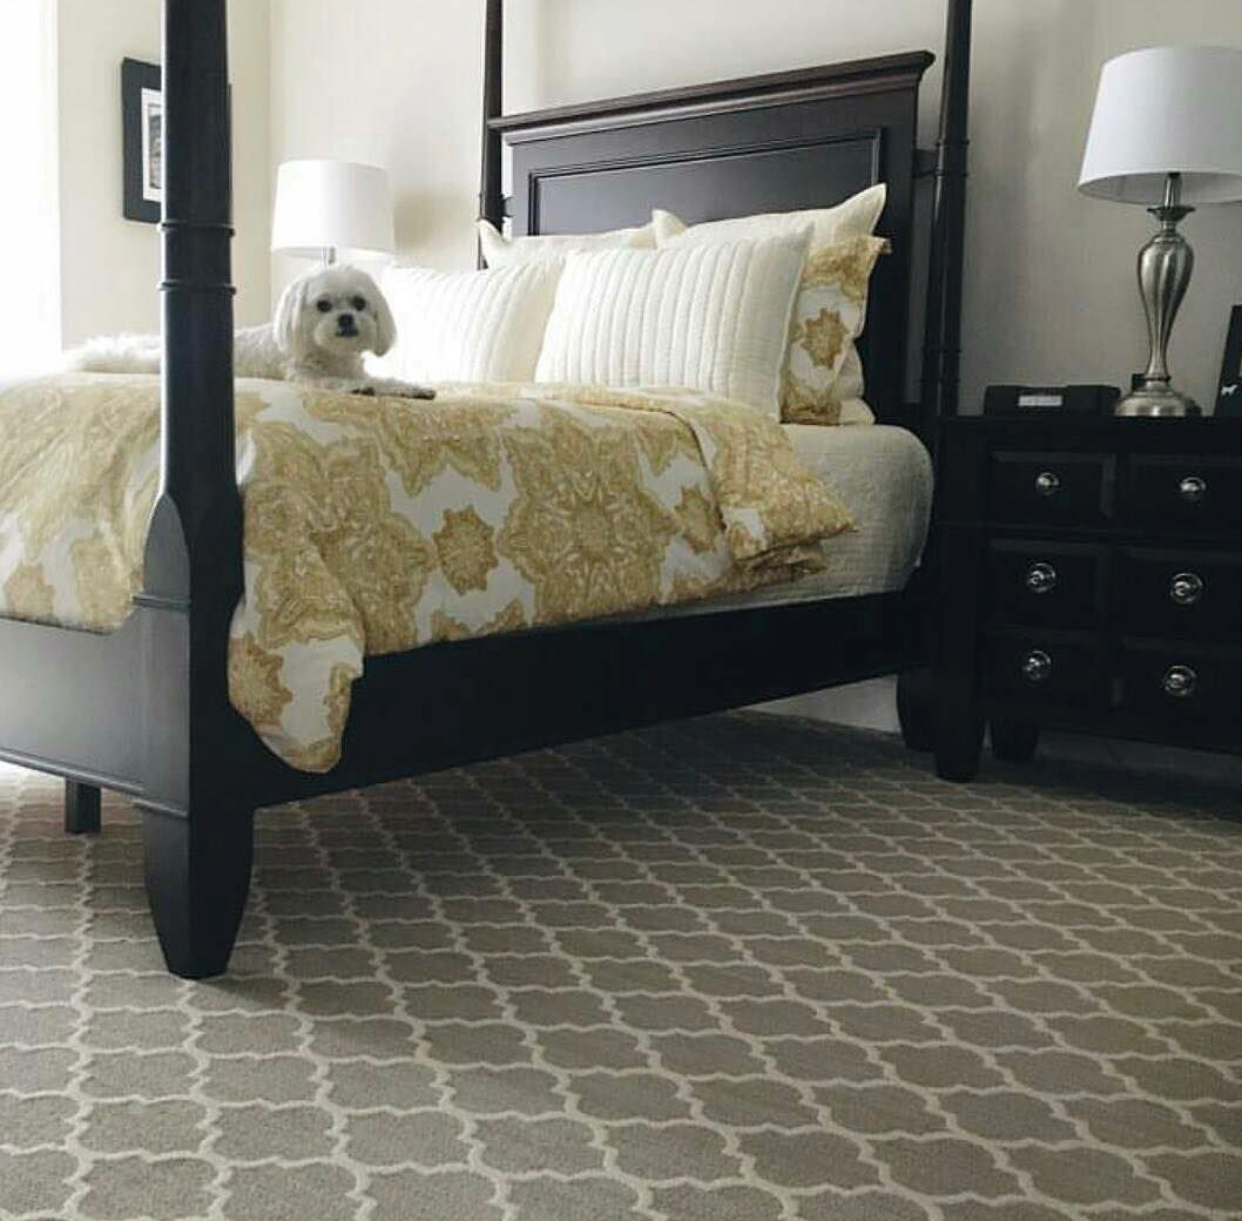 New carpet is a great way to add comfort and style to your home in 2018. -